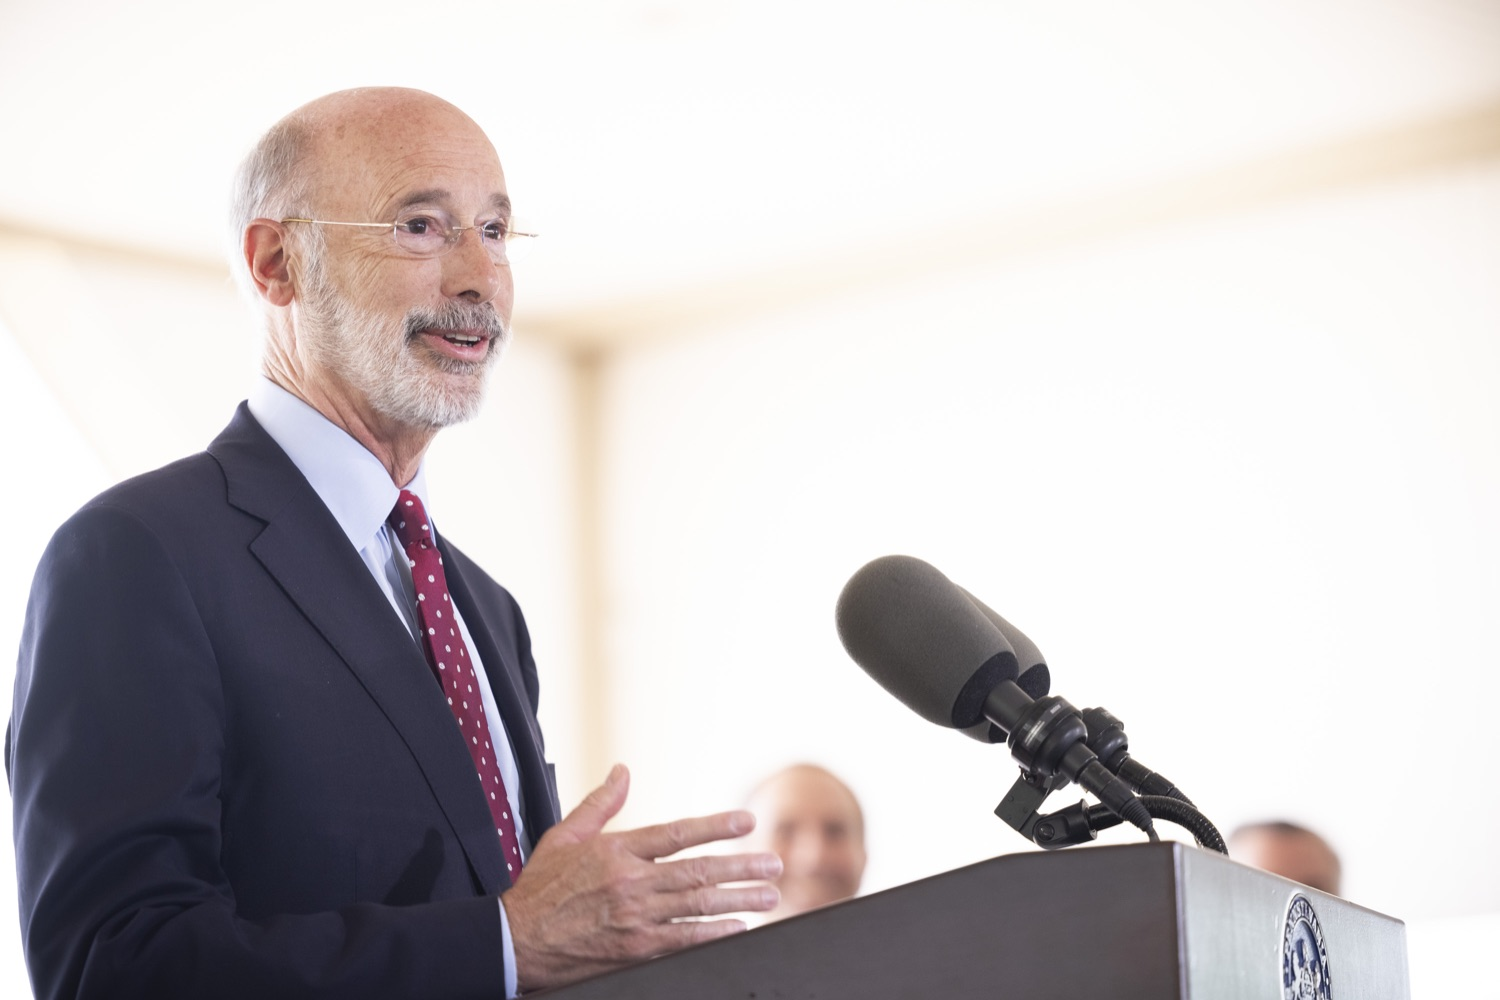 """<a href=""""https://filesource.wostreaming.net/commonwealthofpa/photo/18932_gov_chirp_dz_021.jpg"""" target=""""_blank"""">⇣Download Photo<br></a>Pennsylvania Governor Tom Wolf speaking with the press.  Governor Tom Wolf today joined the Pennsylvania Department of Community and Economic Development, Bucks County Commissioners, Bristol Borough Mayor Joseph Saxton, local lawmakers, Bucks County Economic Development Corporation, Visit Bucks County, the Bucks County Redevelopment Authority, and the owners of Itri Wood Fired to highlight the $7 million in grant funding provided to Bucks County restaurants through the COVID-19 Hospitality Industry Recovery Program(CHIRP).  JULY 16, 2021 - BRISTOL, PA"""